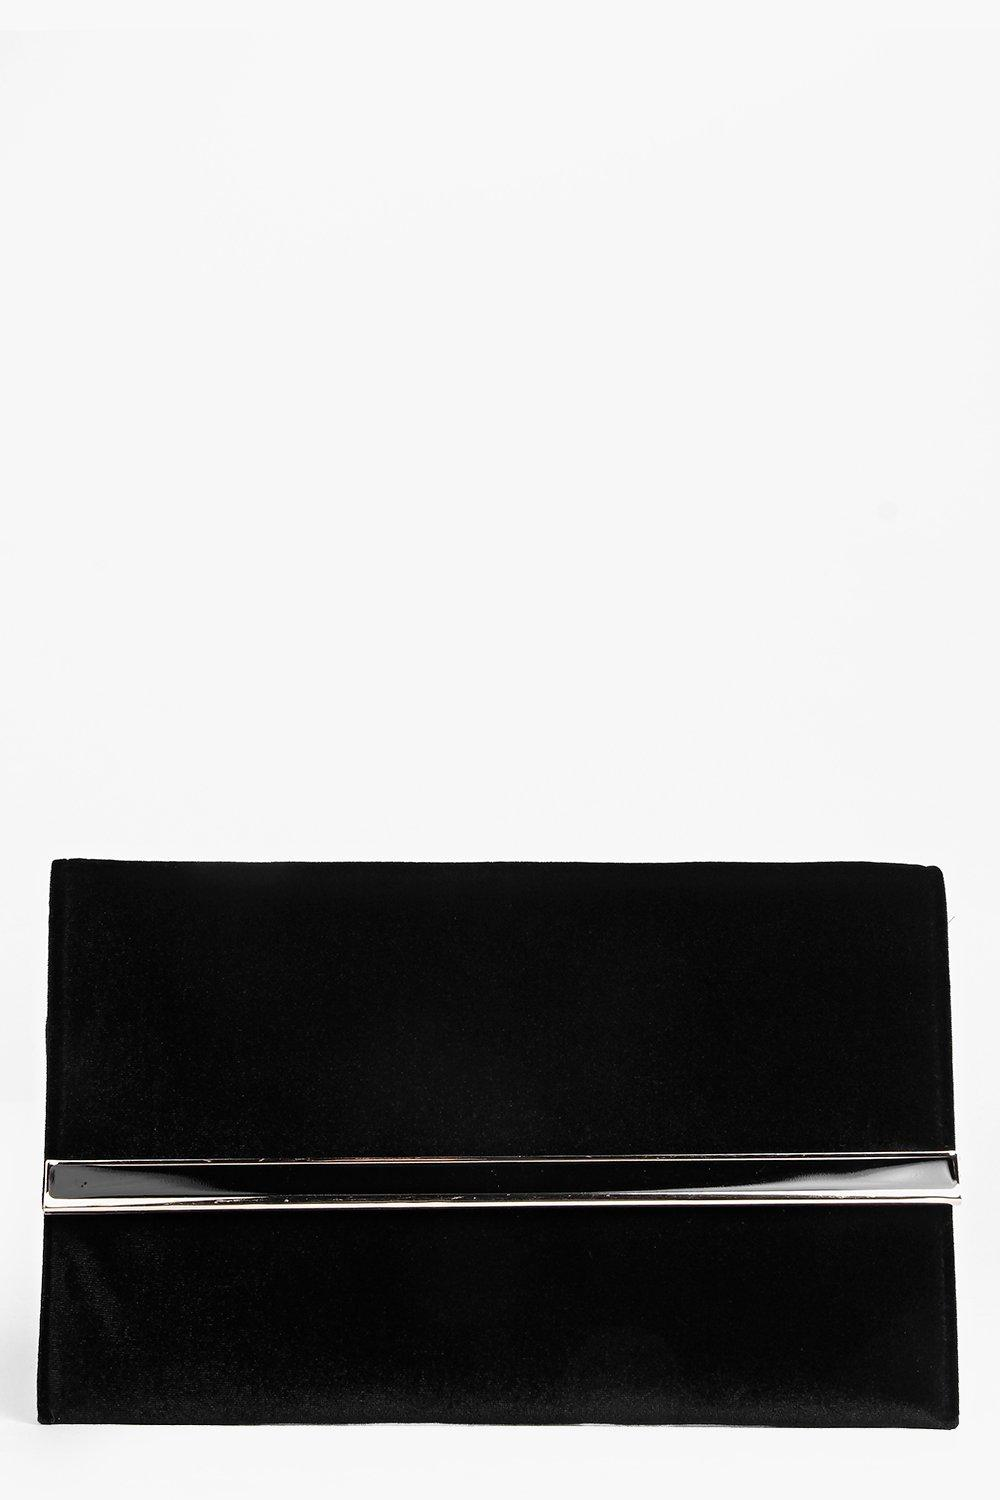 Suedette Metal Bar Clutch Bag black